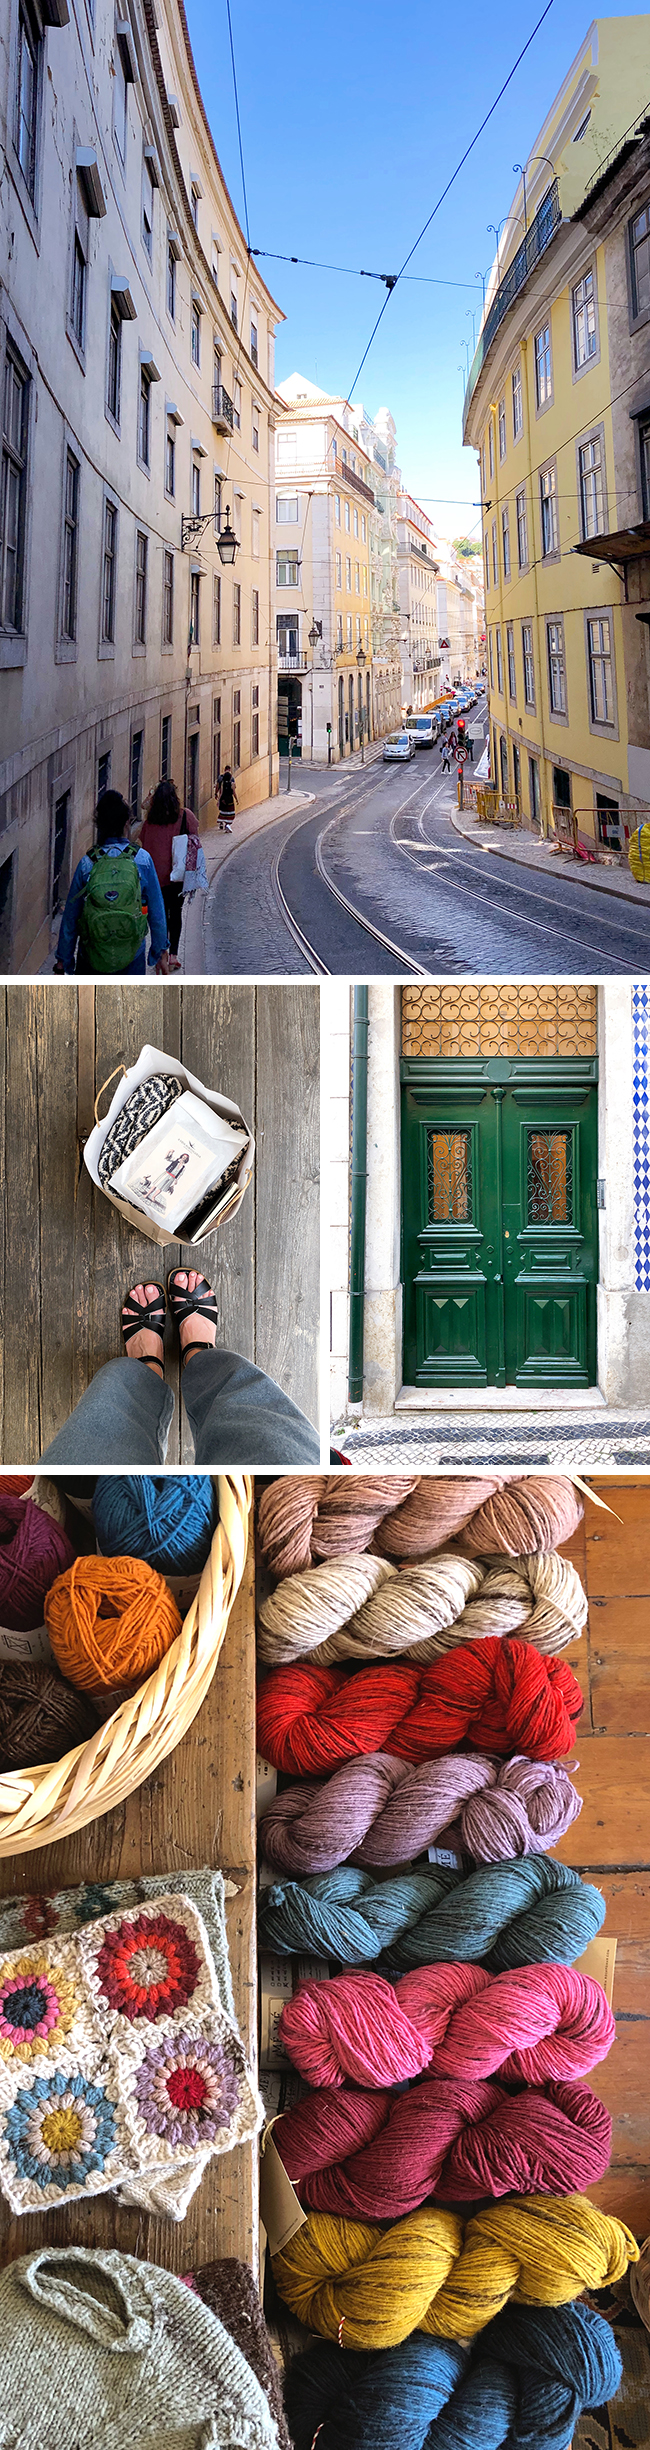 Portugal travel guide: Lisbon and Portuguese knitting